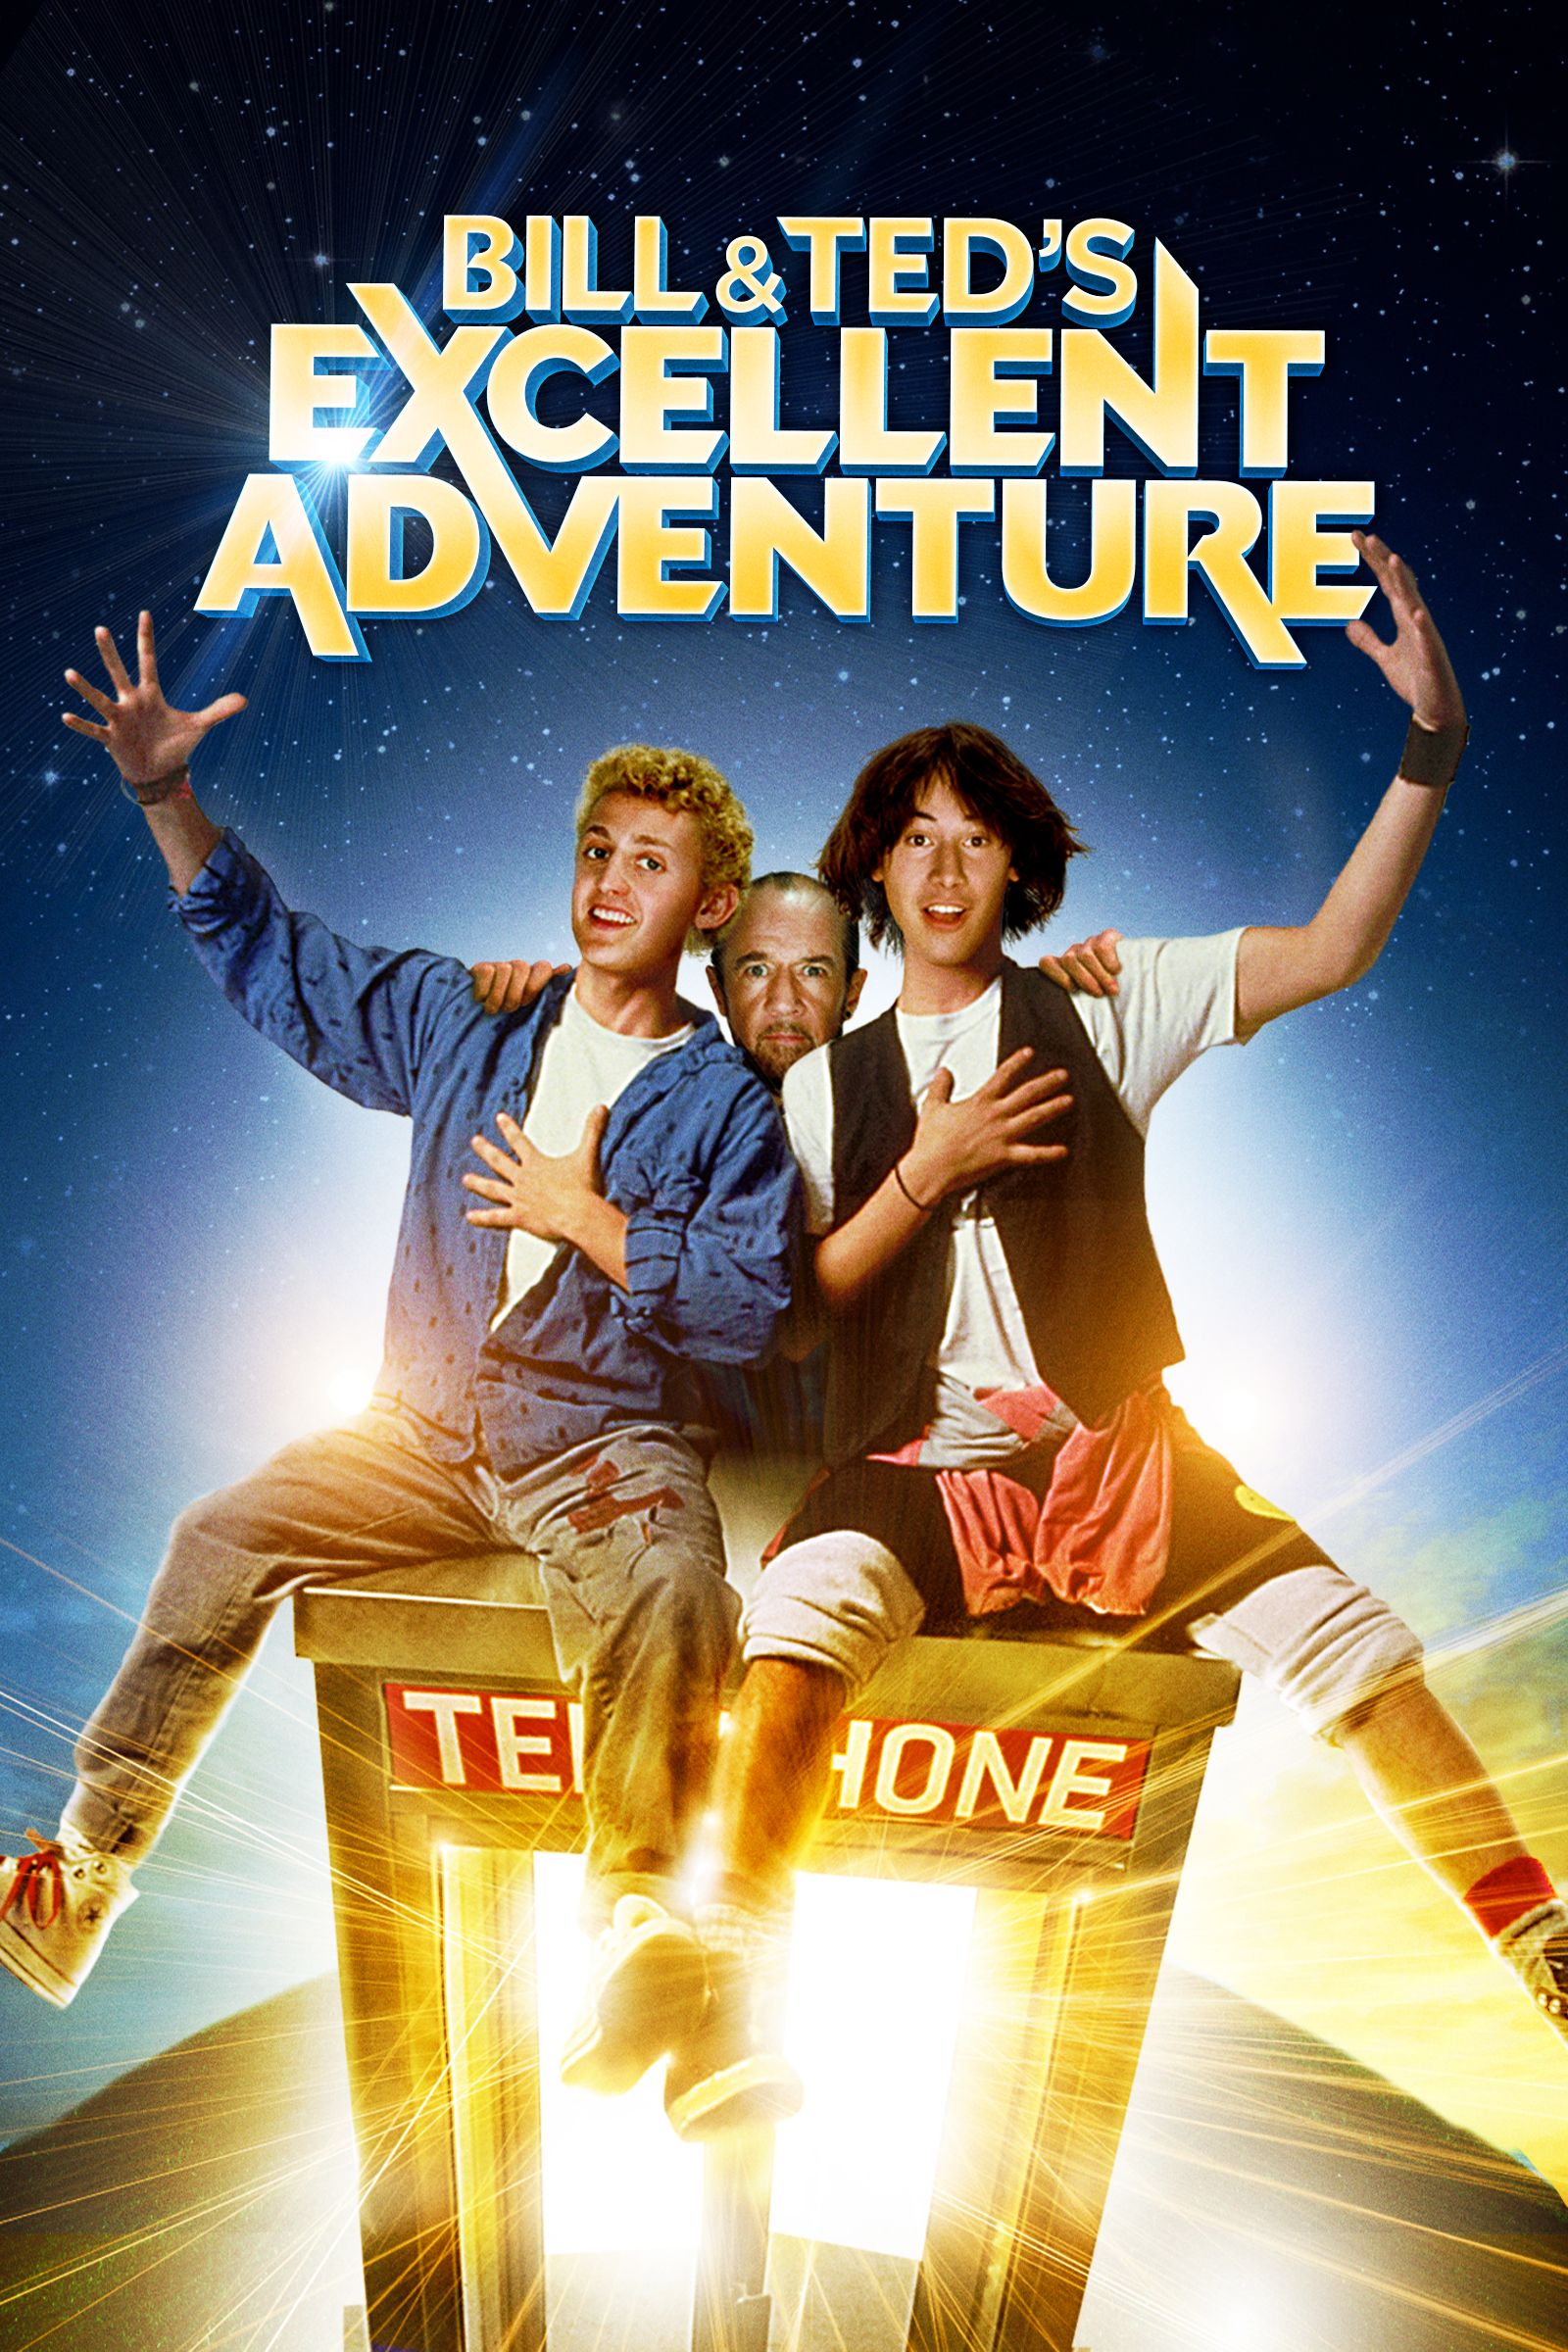 Strange Things Are Afoot At The Circle K My Boys Watched This Last Night And Loved It Bonus Was Clarence Clemmons And Fee Waybill Boys Had No Idea Who That